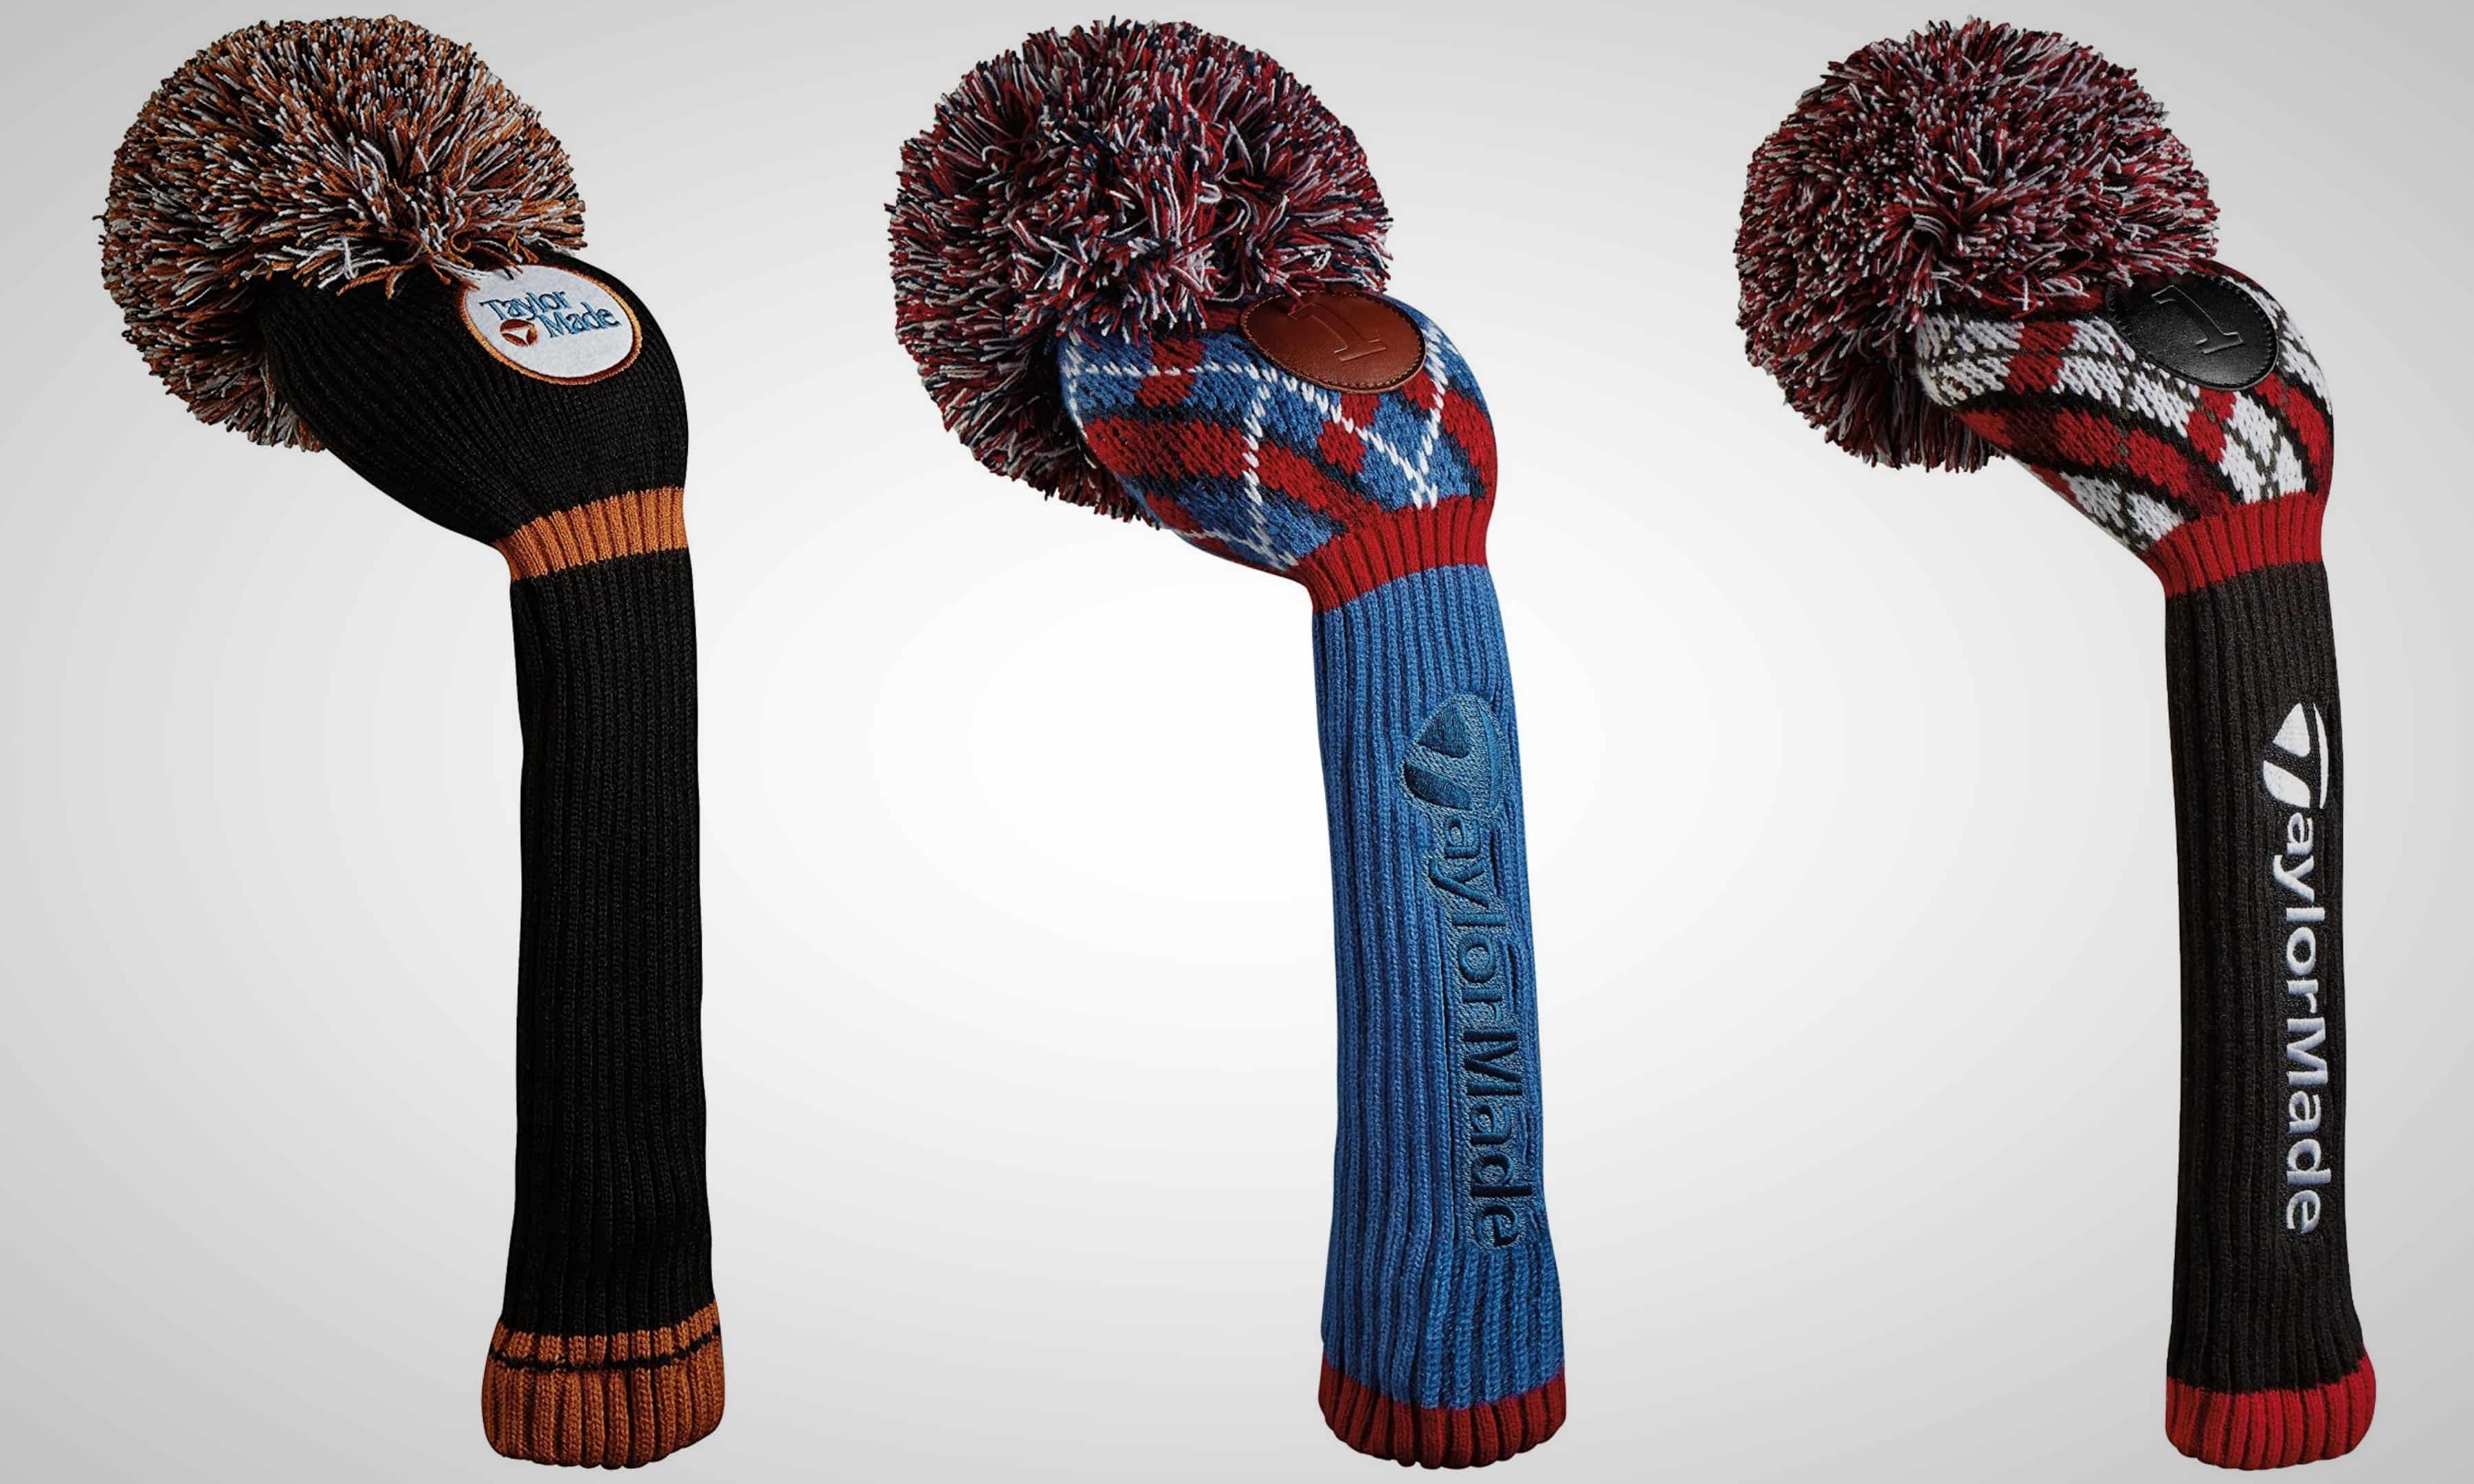 golf-gifts-under-50-tm-headcovers